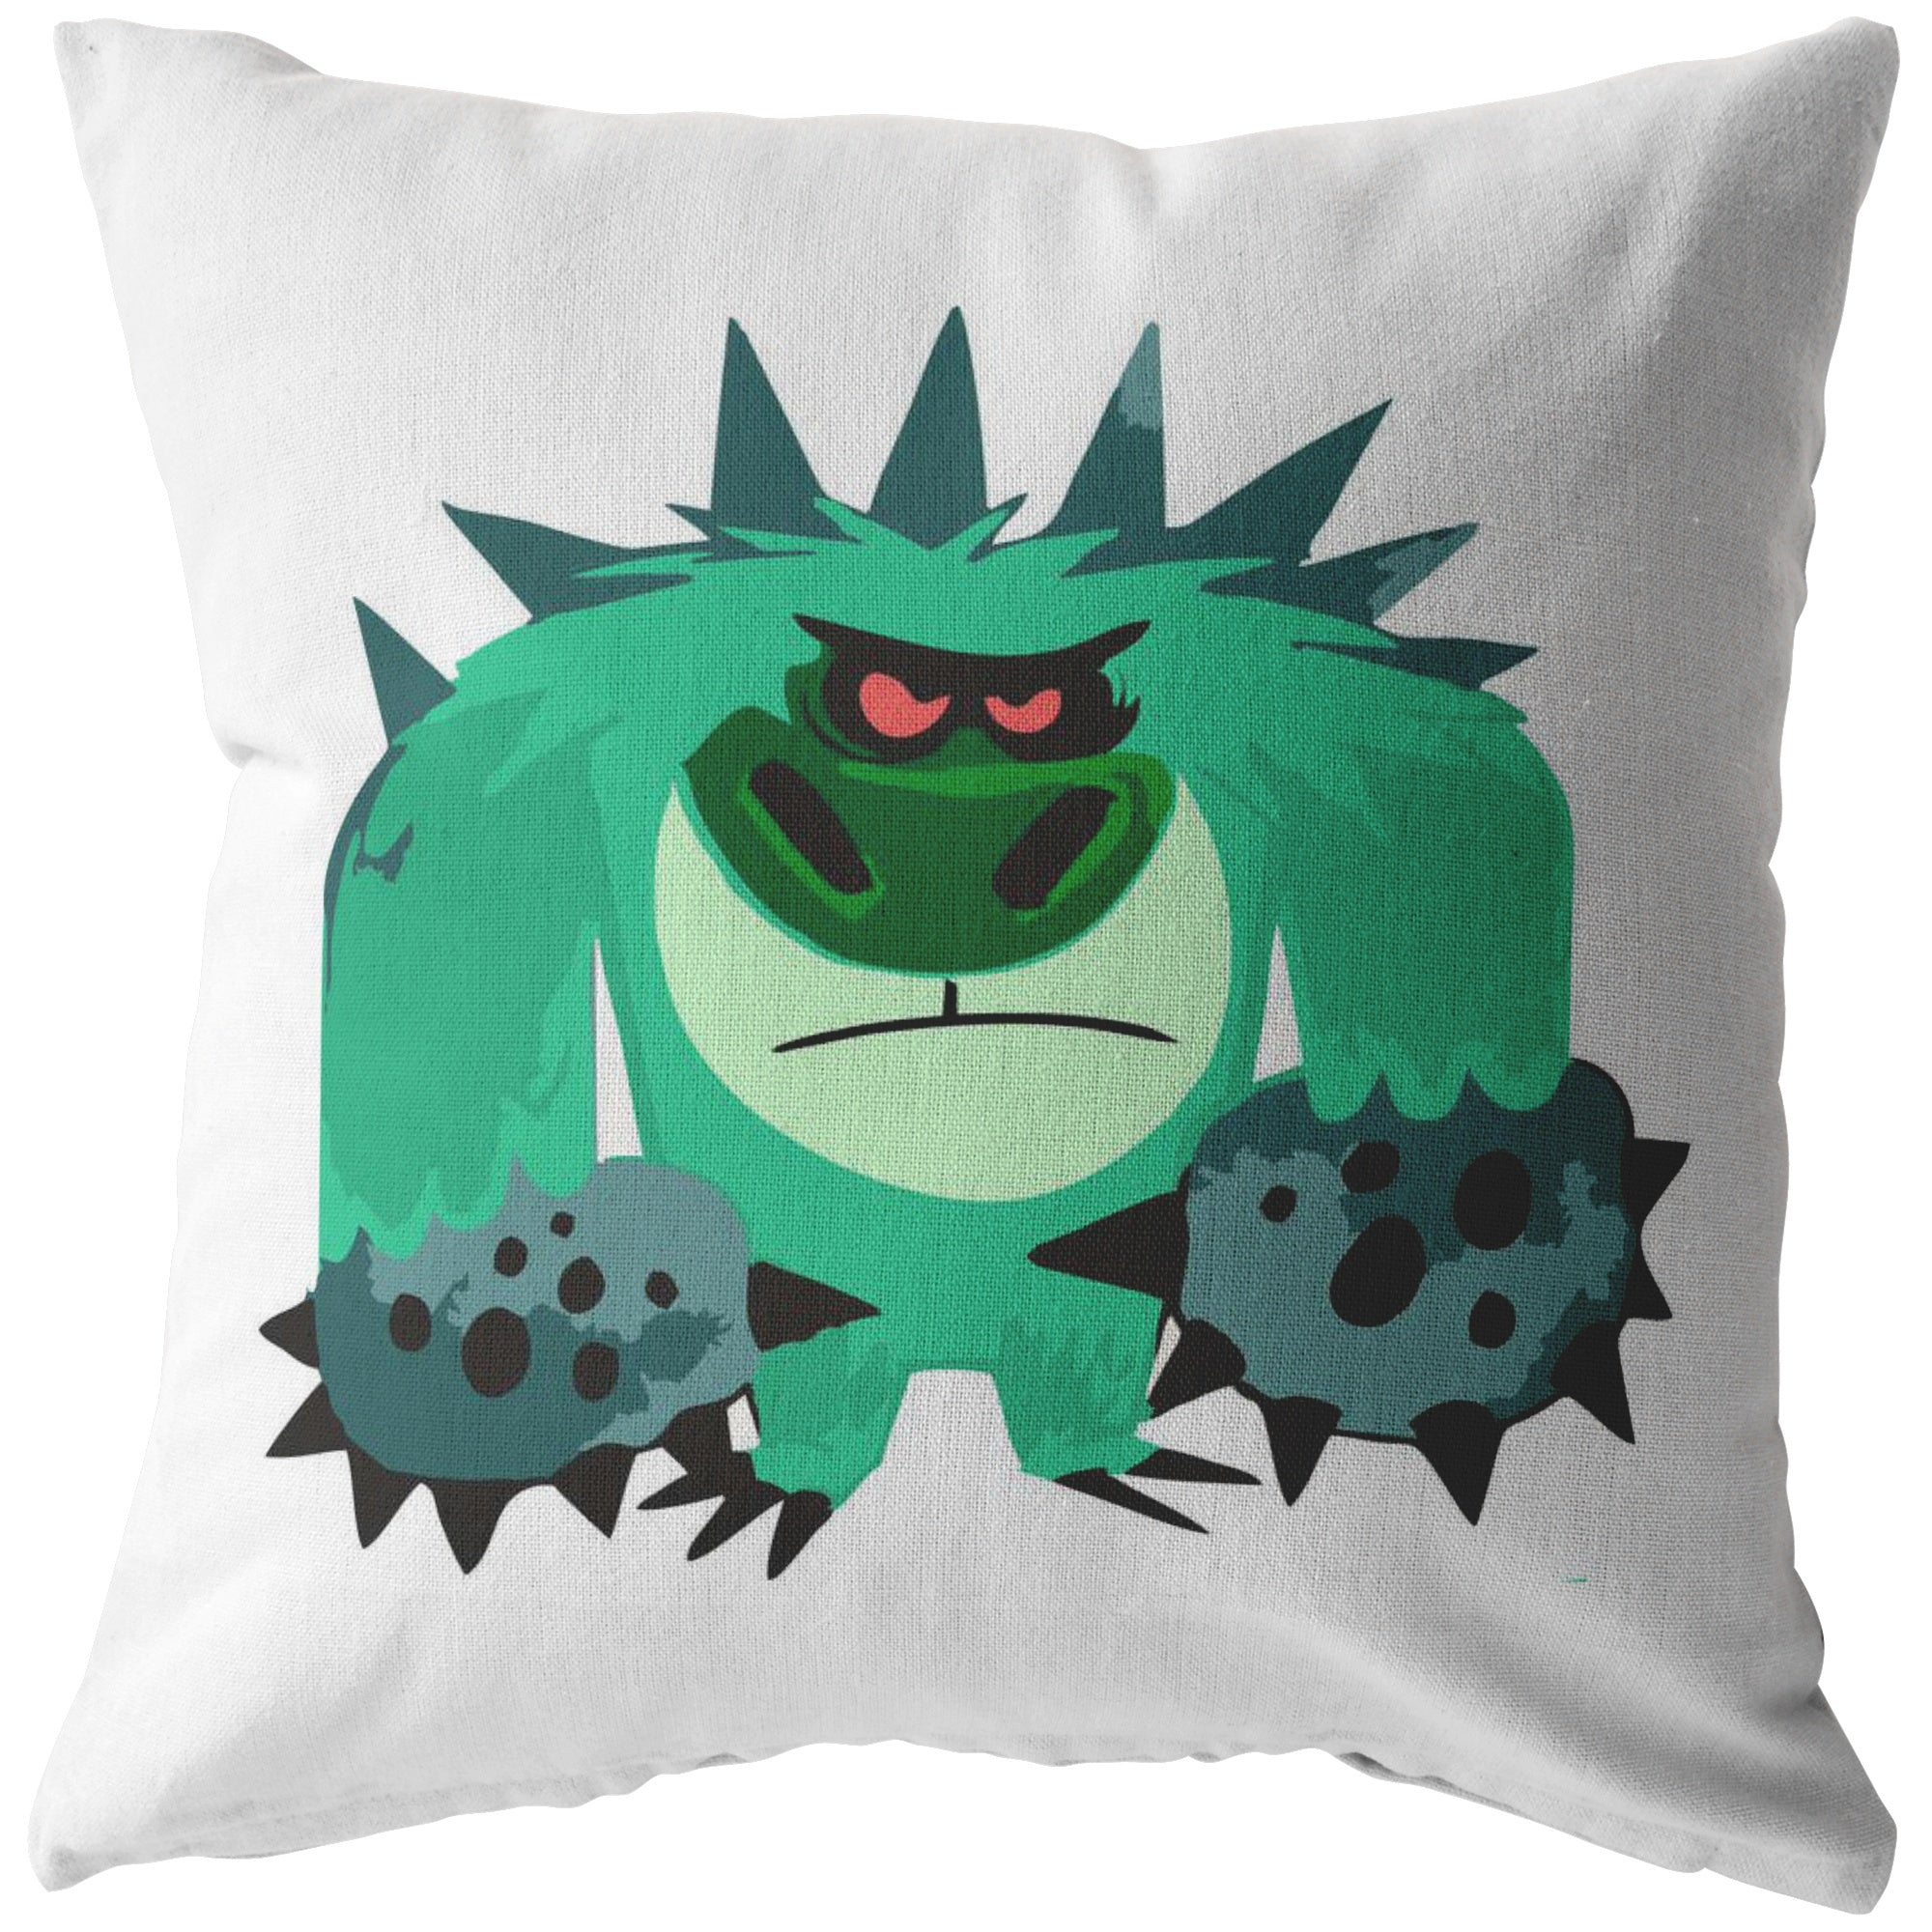 Trigeminal Neuralgia Monster Pillow - The Unchargeables